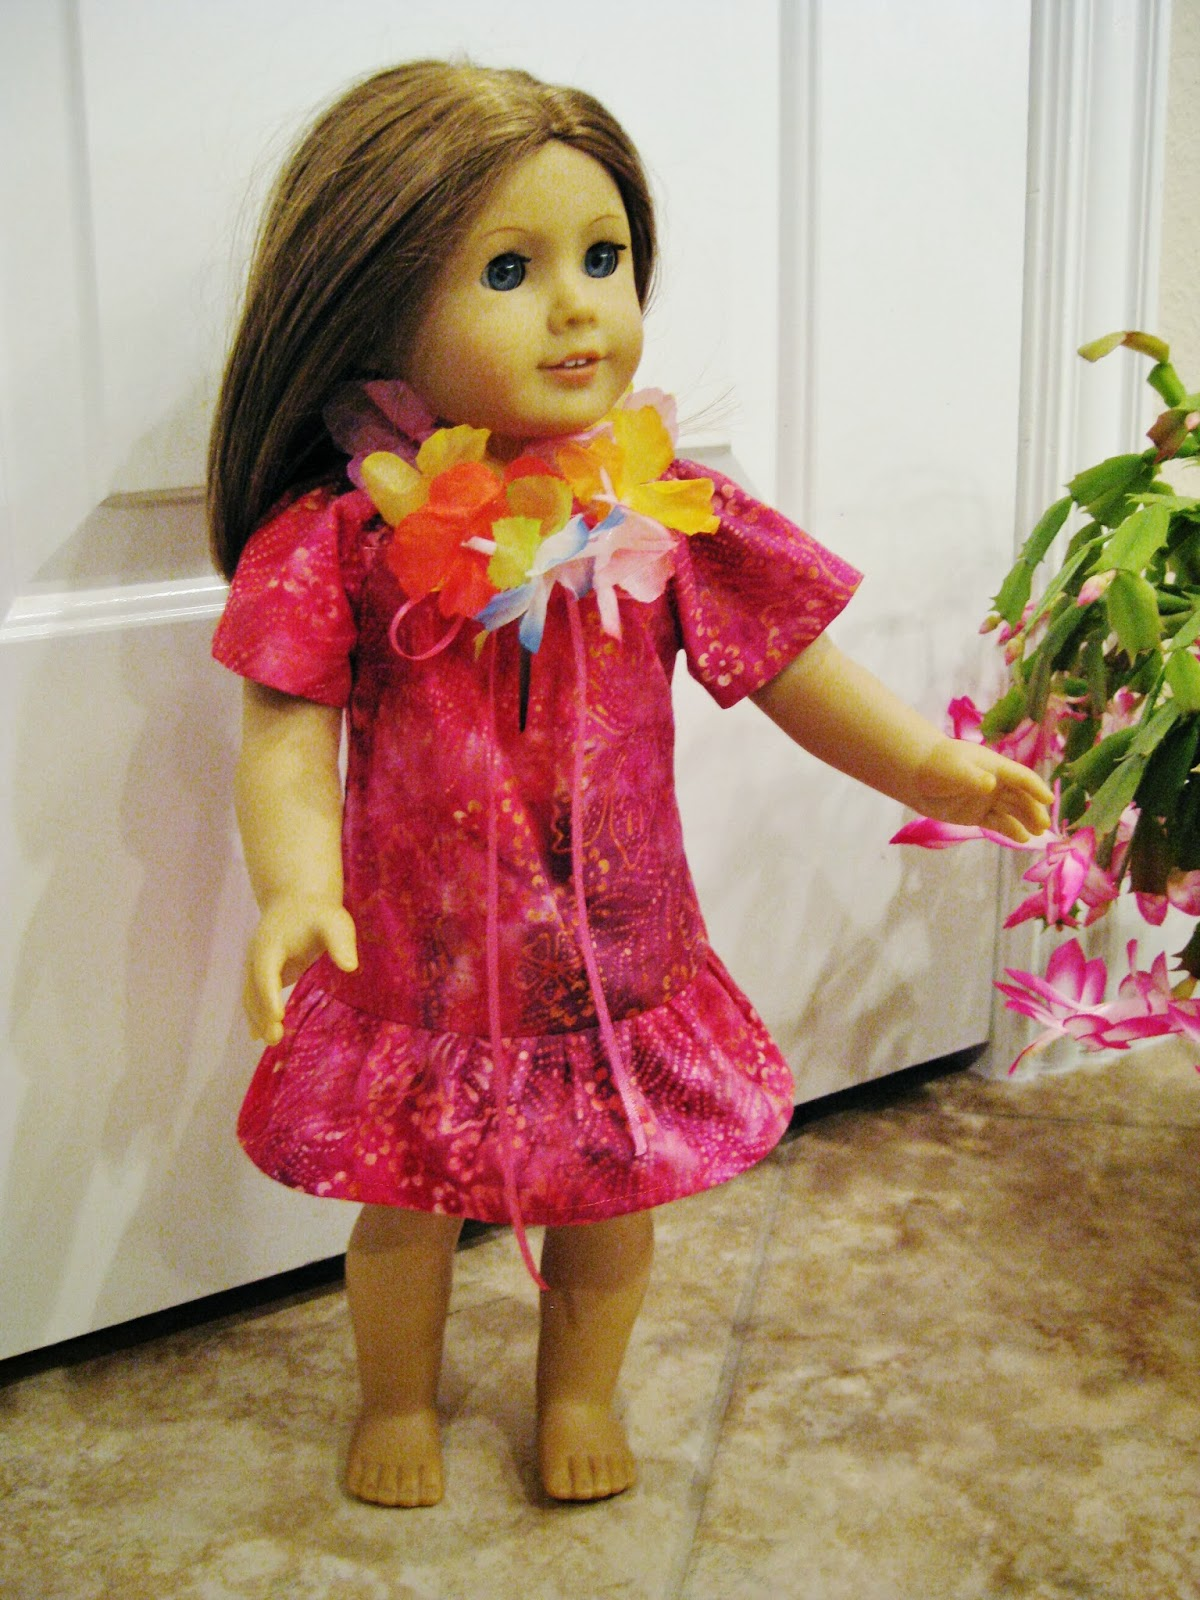 Bonnieprojects American Girl Hula Outfit